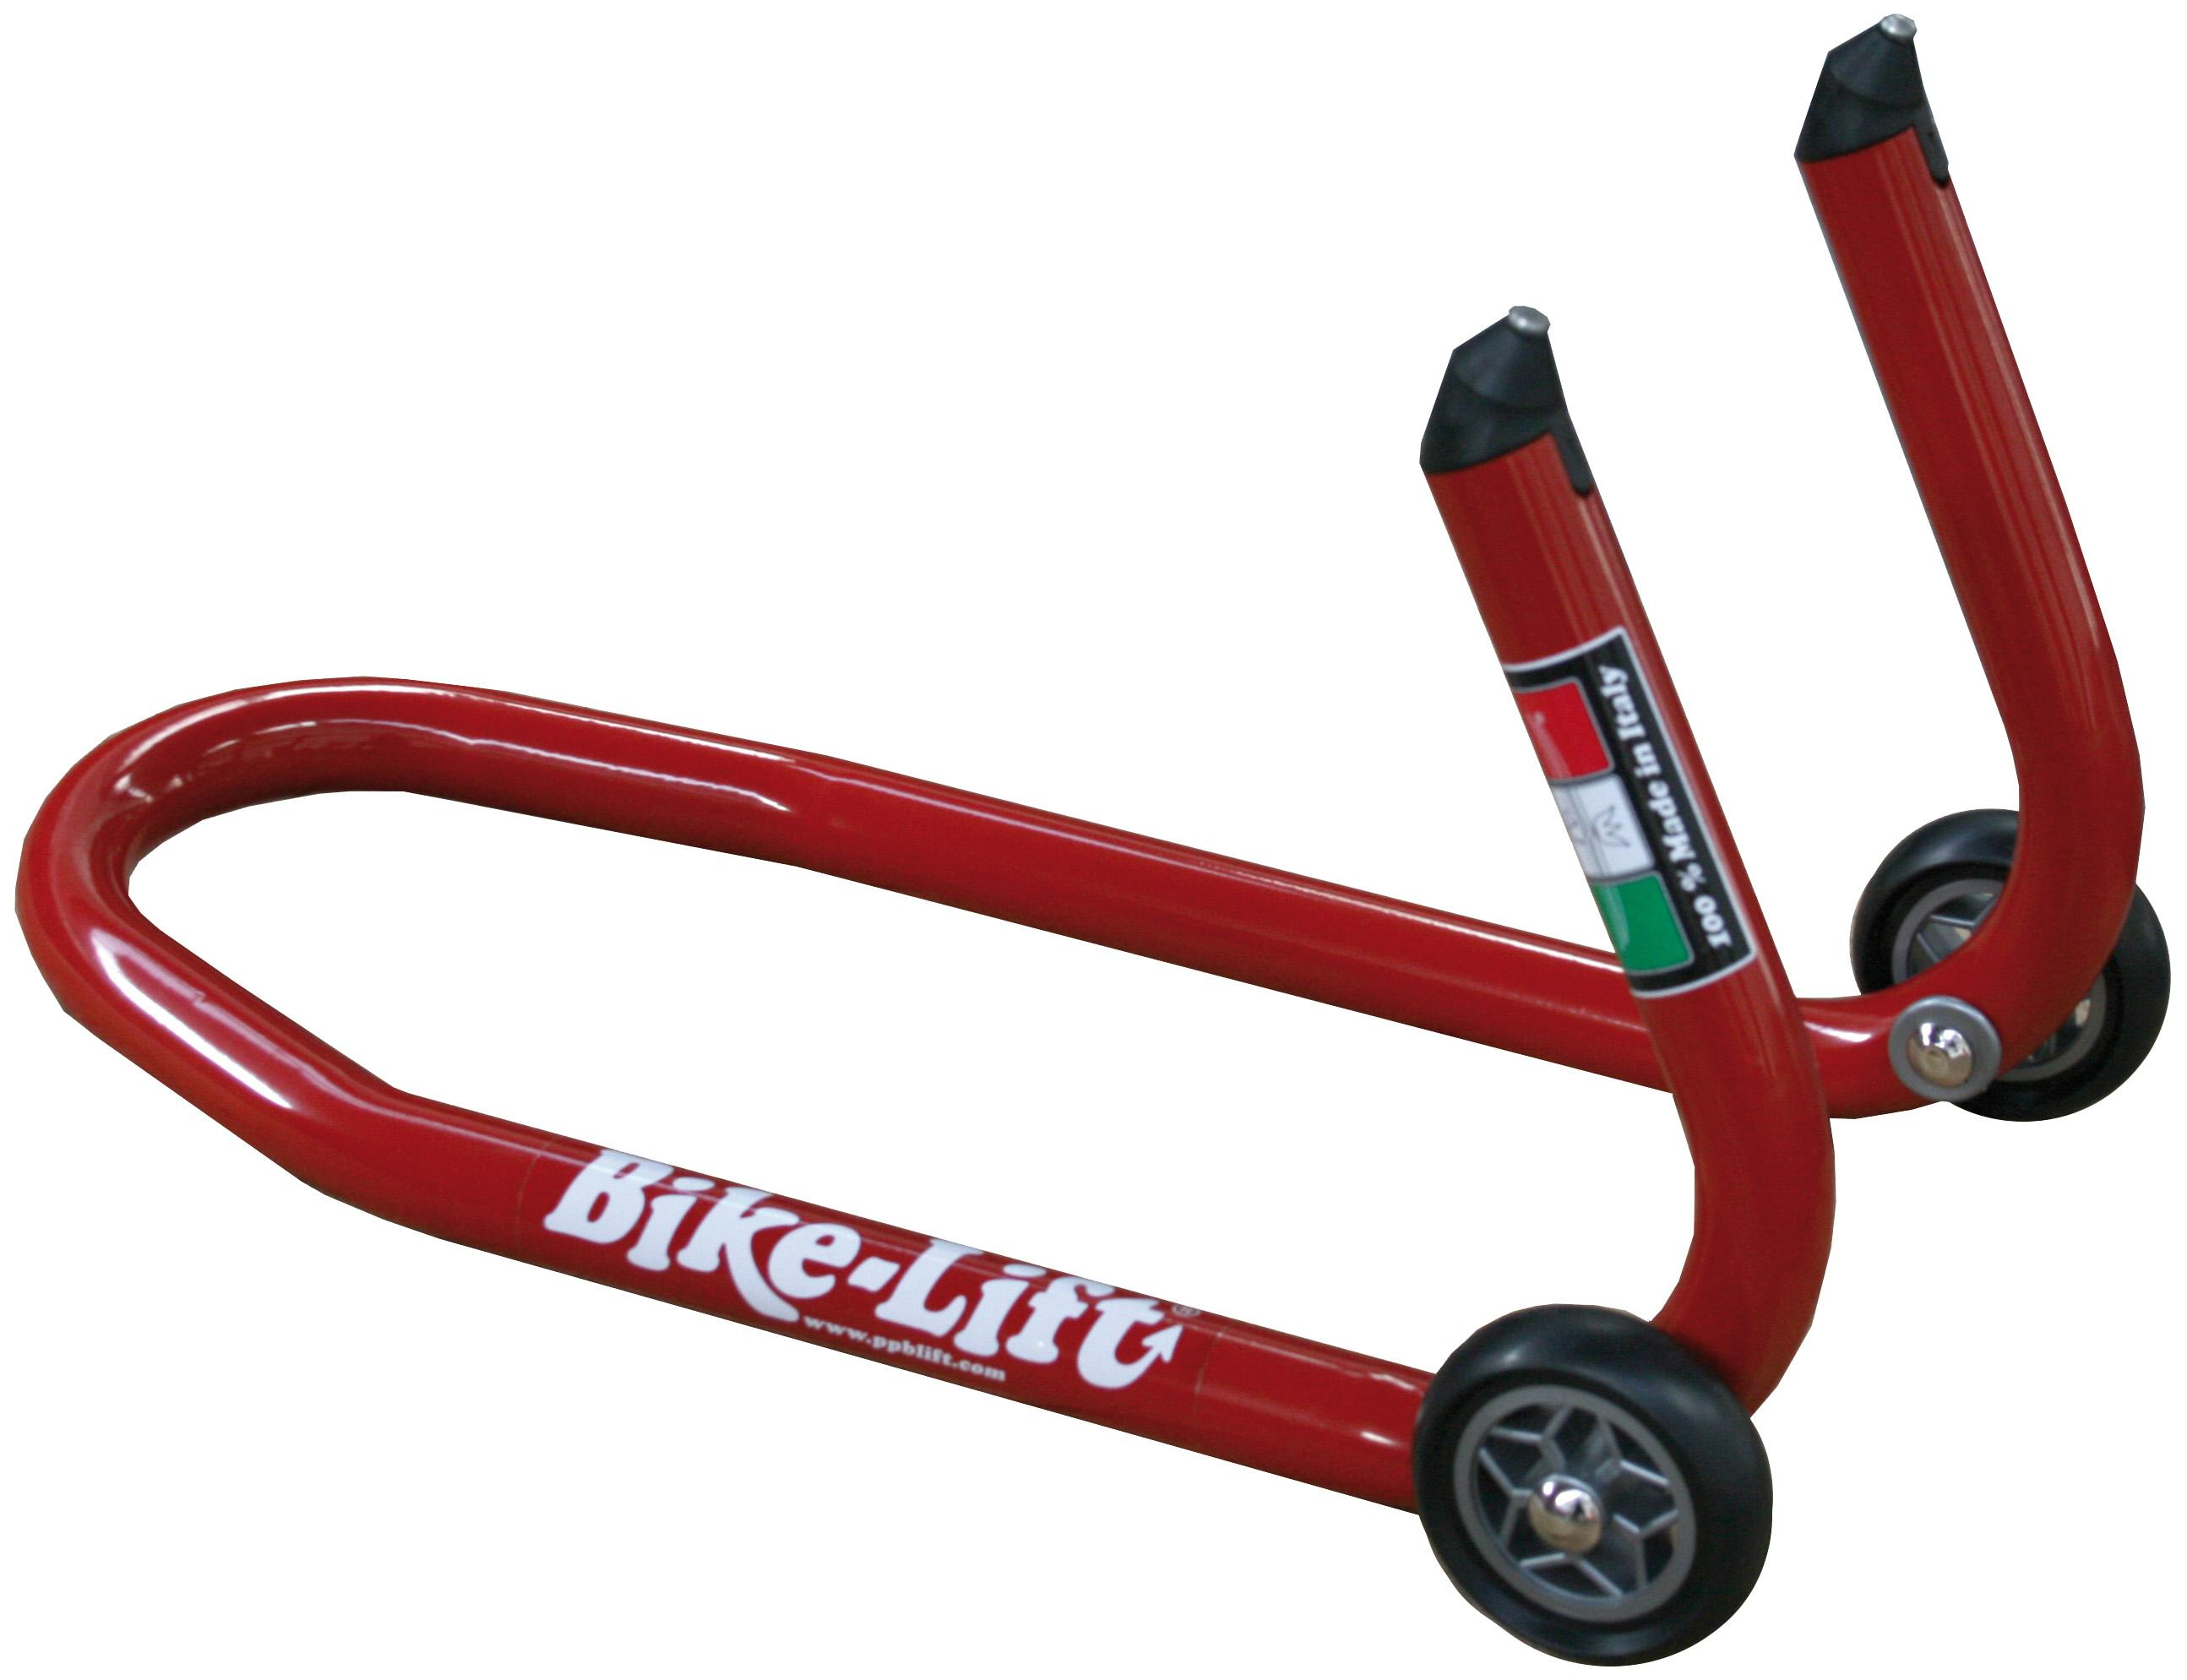 CAVALLETTO MOTO ANTERIORE BIKE LIFT EUROPE FS-9